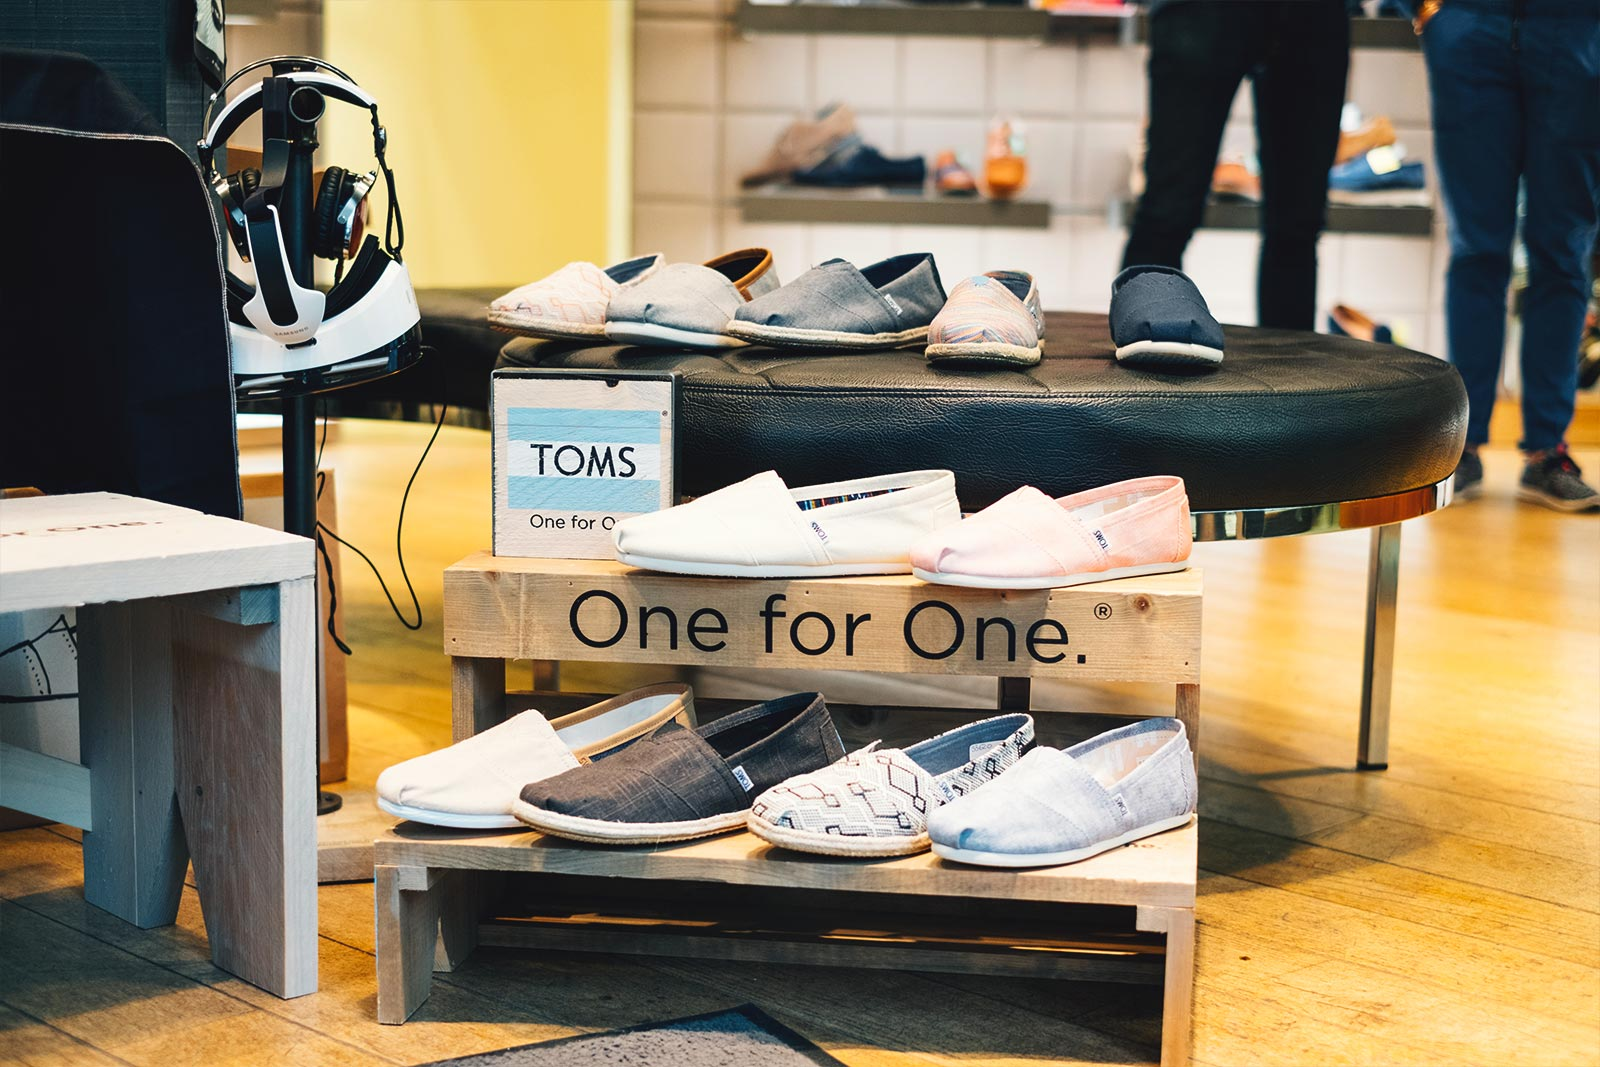 Toms Chaussures one for one